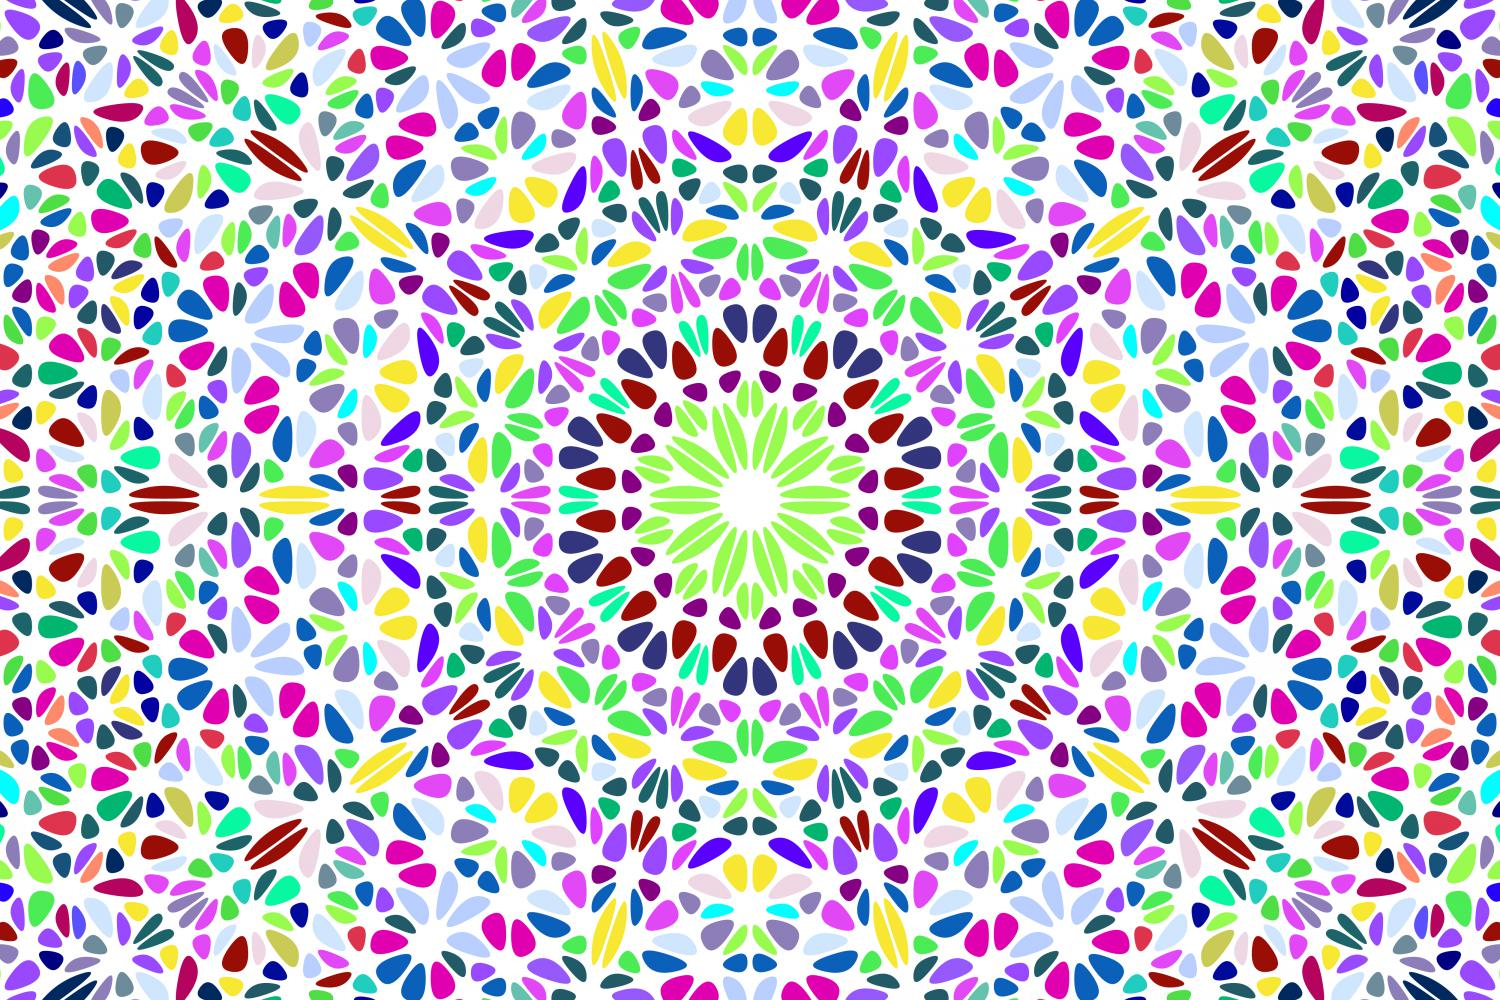 48 Floral Mandala Backgrounds example image 16